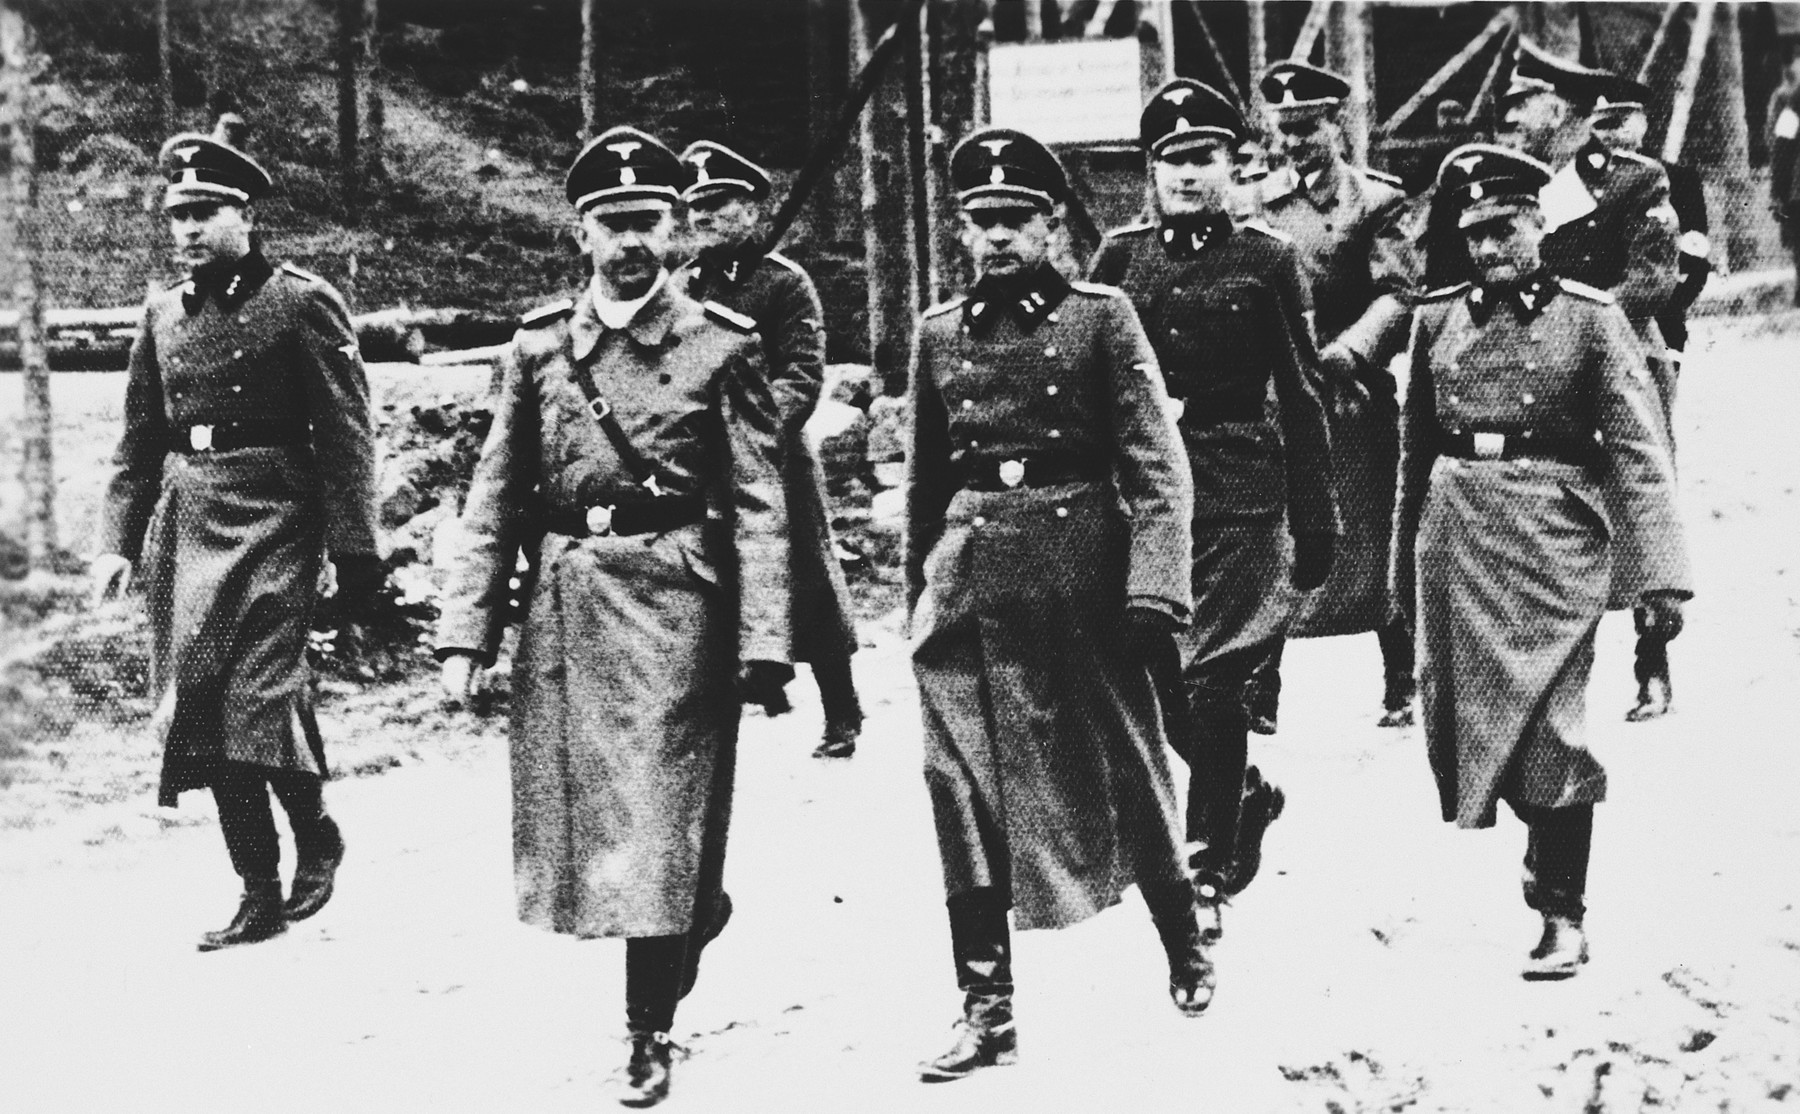 Heinrich Himmler goes on an inspection tour of the Flossenbuerg concentration camp.  Heinrich Himmler is pictured second from the left.  To his right the camp commandant Karl Künstler, to his far right the adjutant Ludwig Baumgartner. In the back: Karl Wolff and Oswald Pohl (from left).